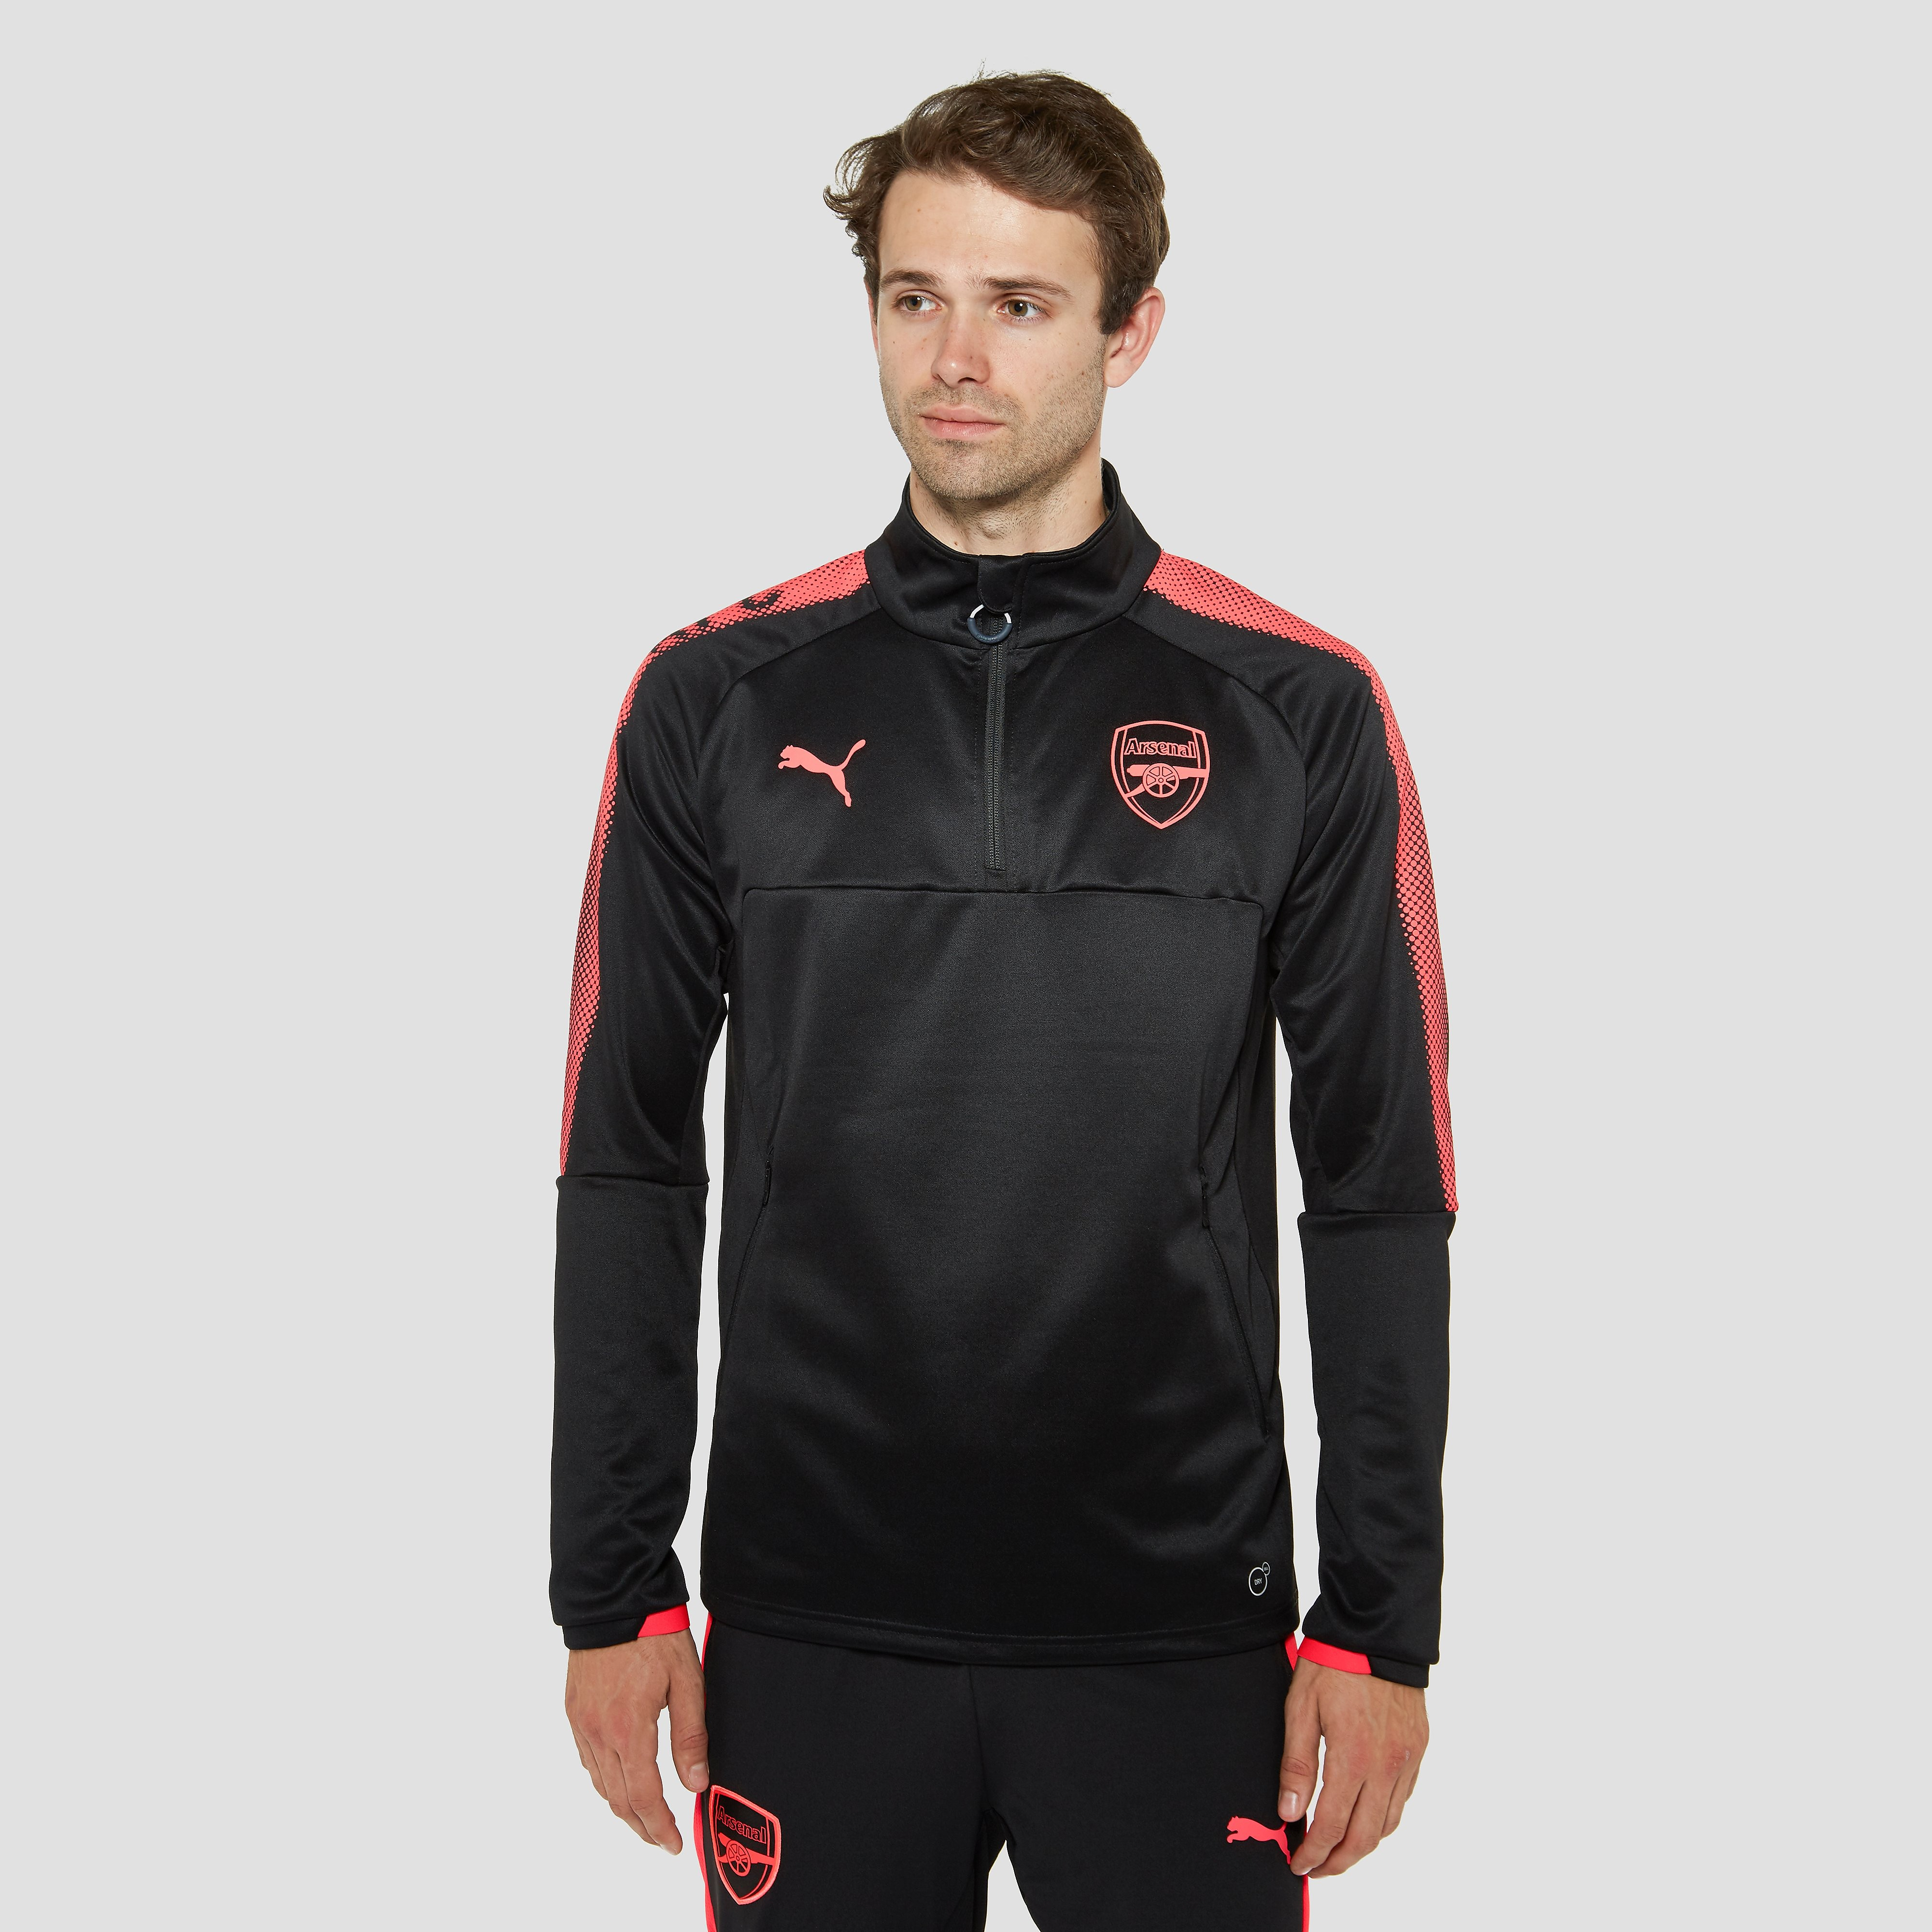 PUMA ARSENAL FC EU TRAININGSTOP 17/18 ZWART HEREN